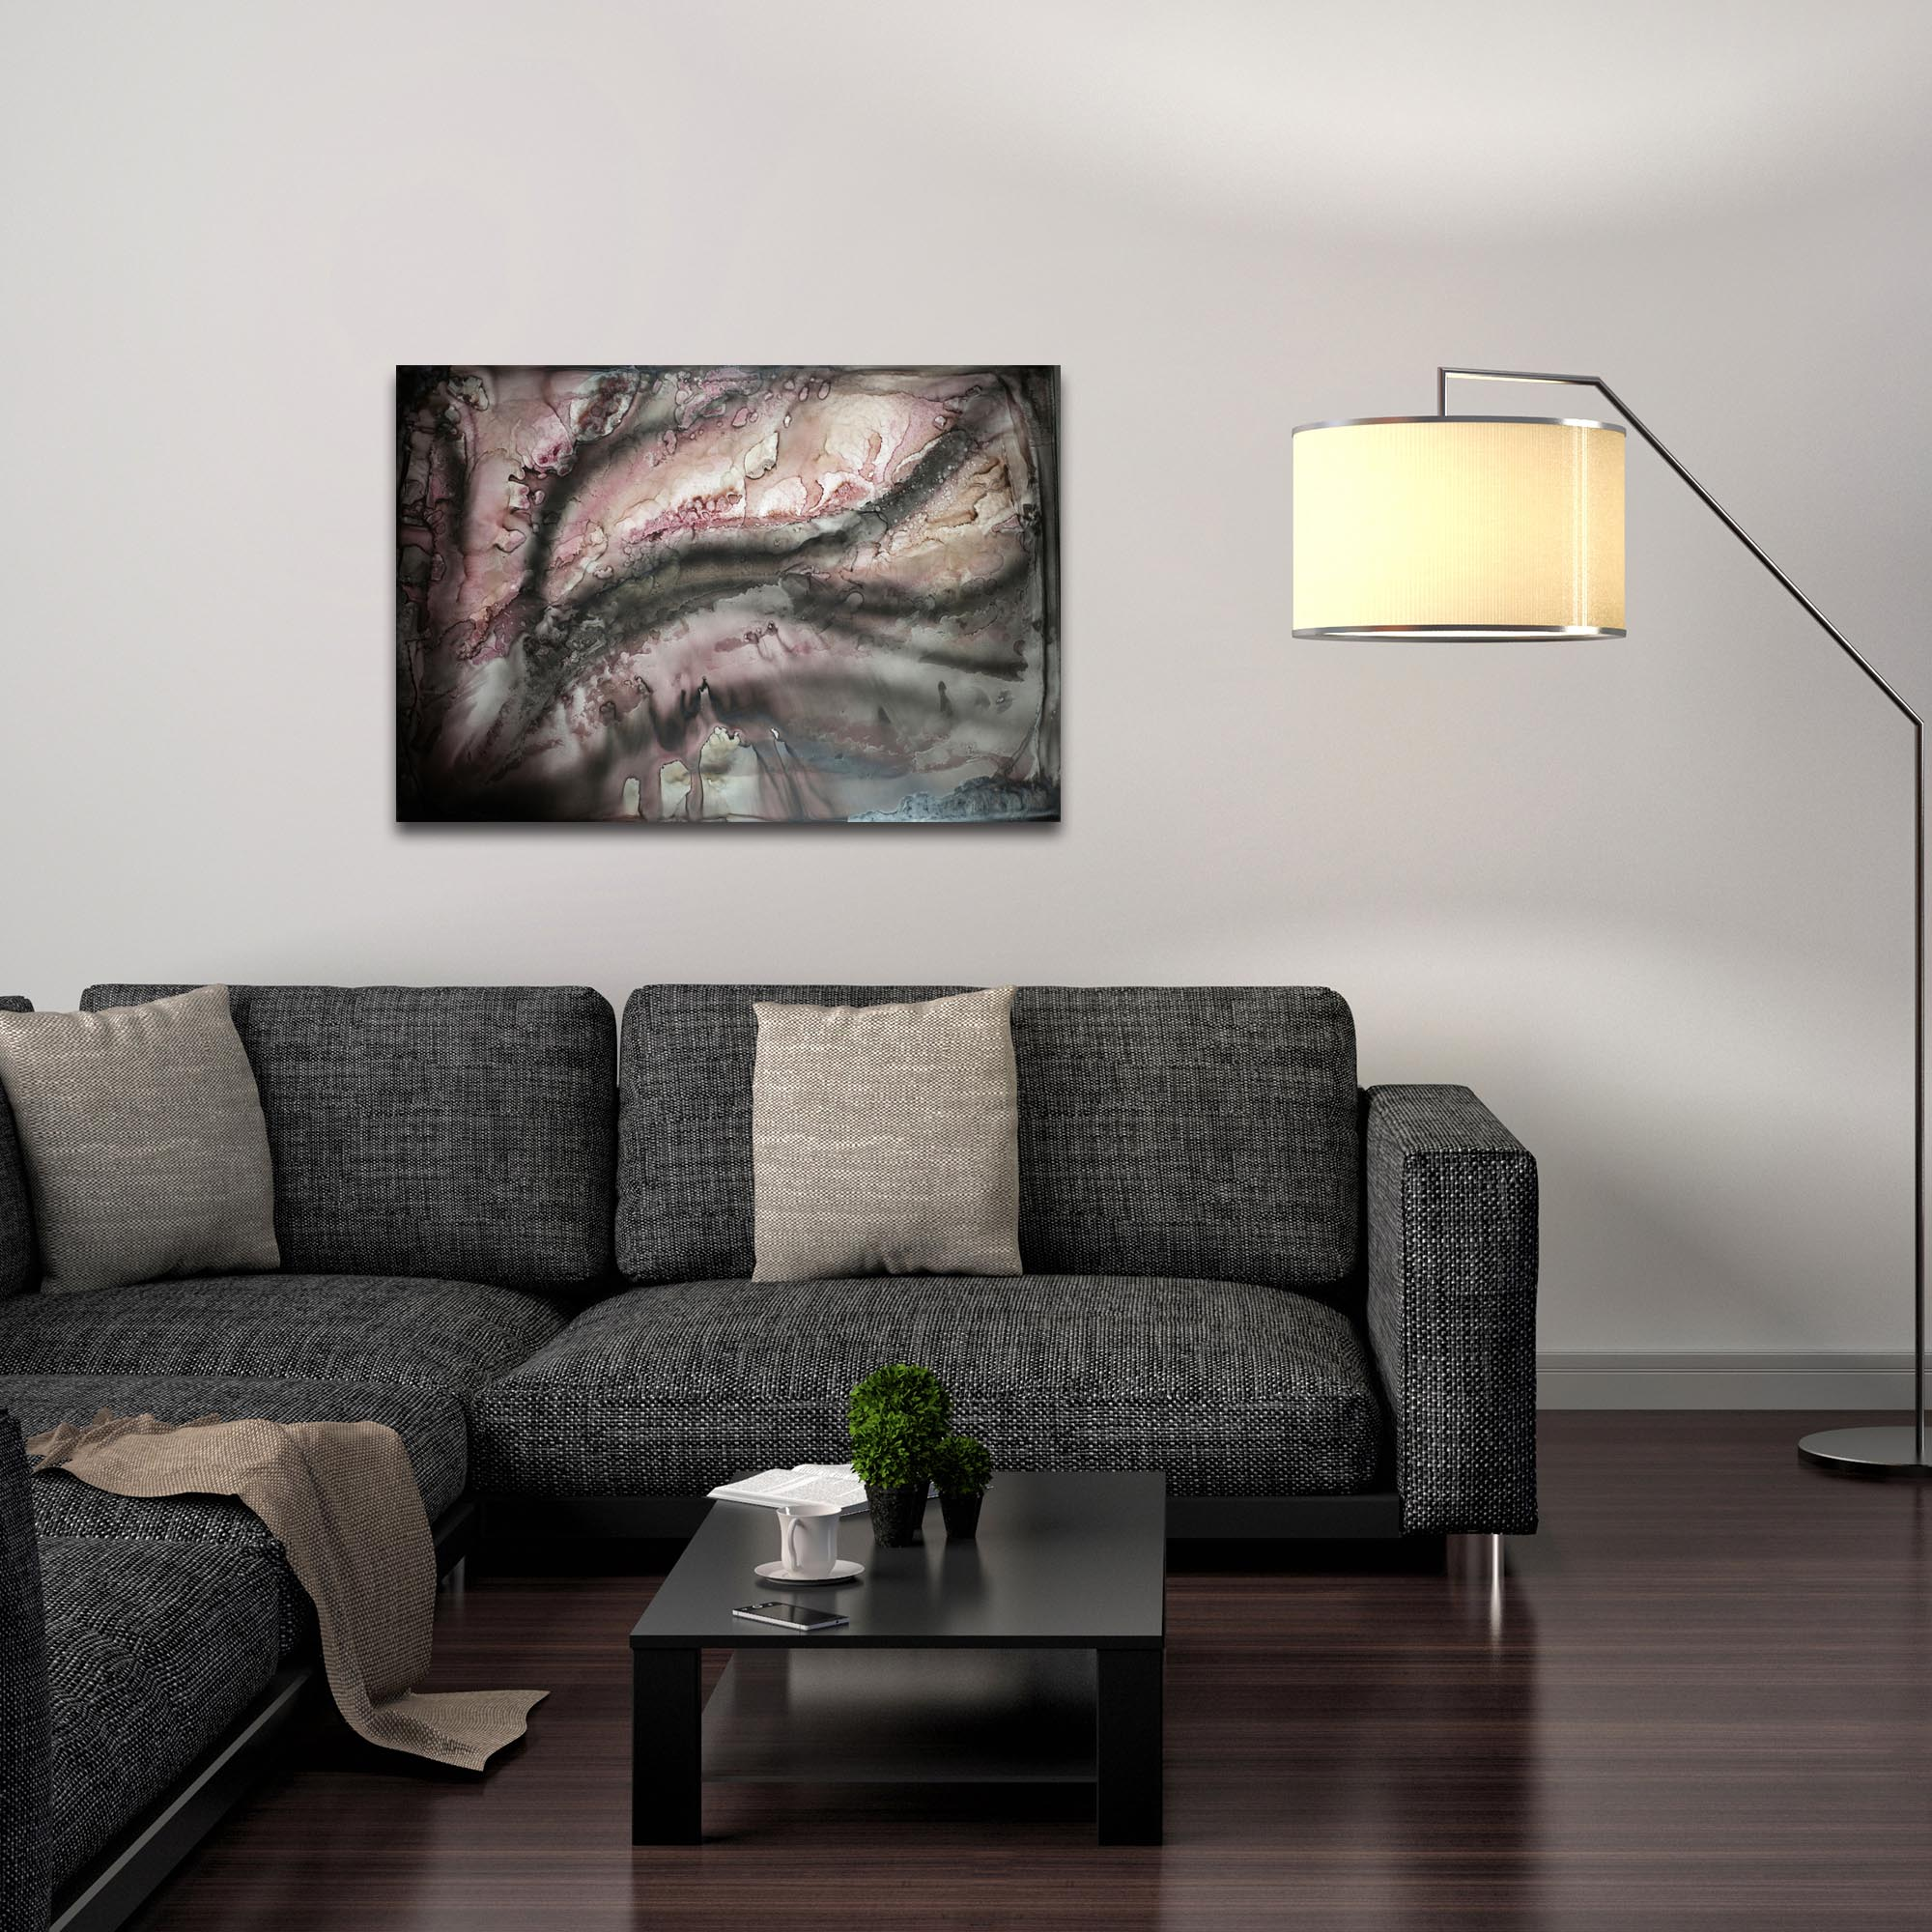 Abstract Wall Art 'Rose Crystal' - Urban Decor on Metal or Plexiglass - Lifestyle View